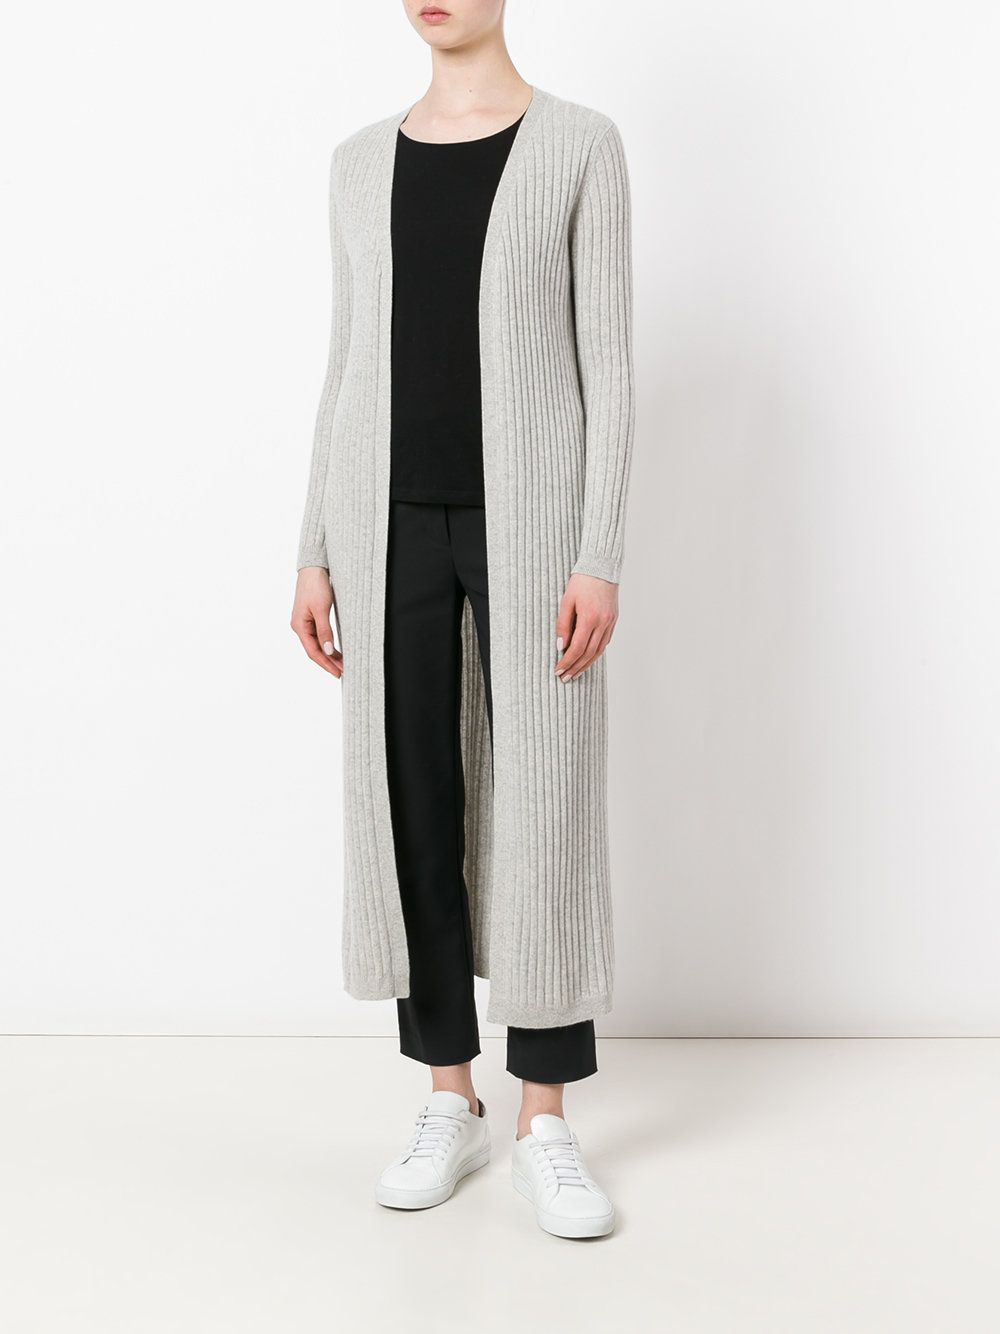 N.Peal ribbed-knit duster cardigan